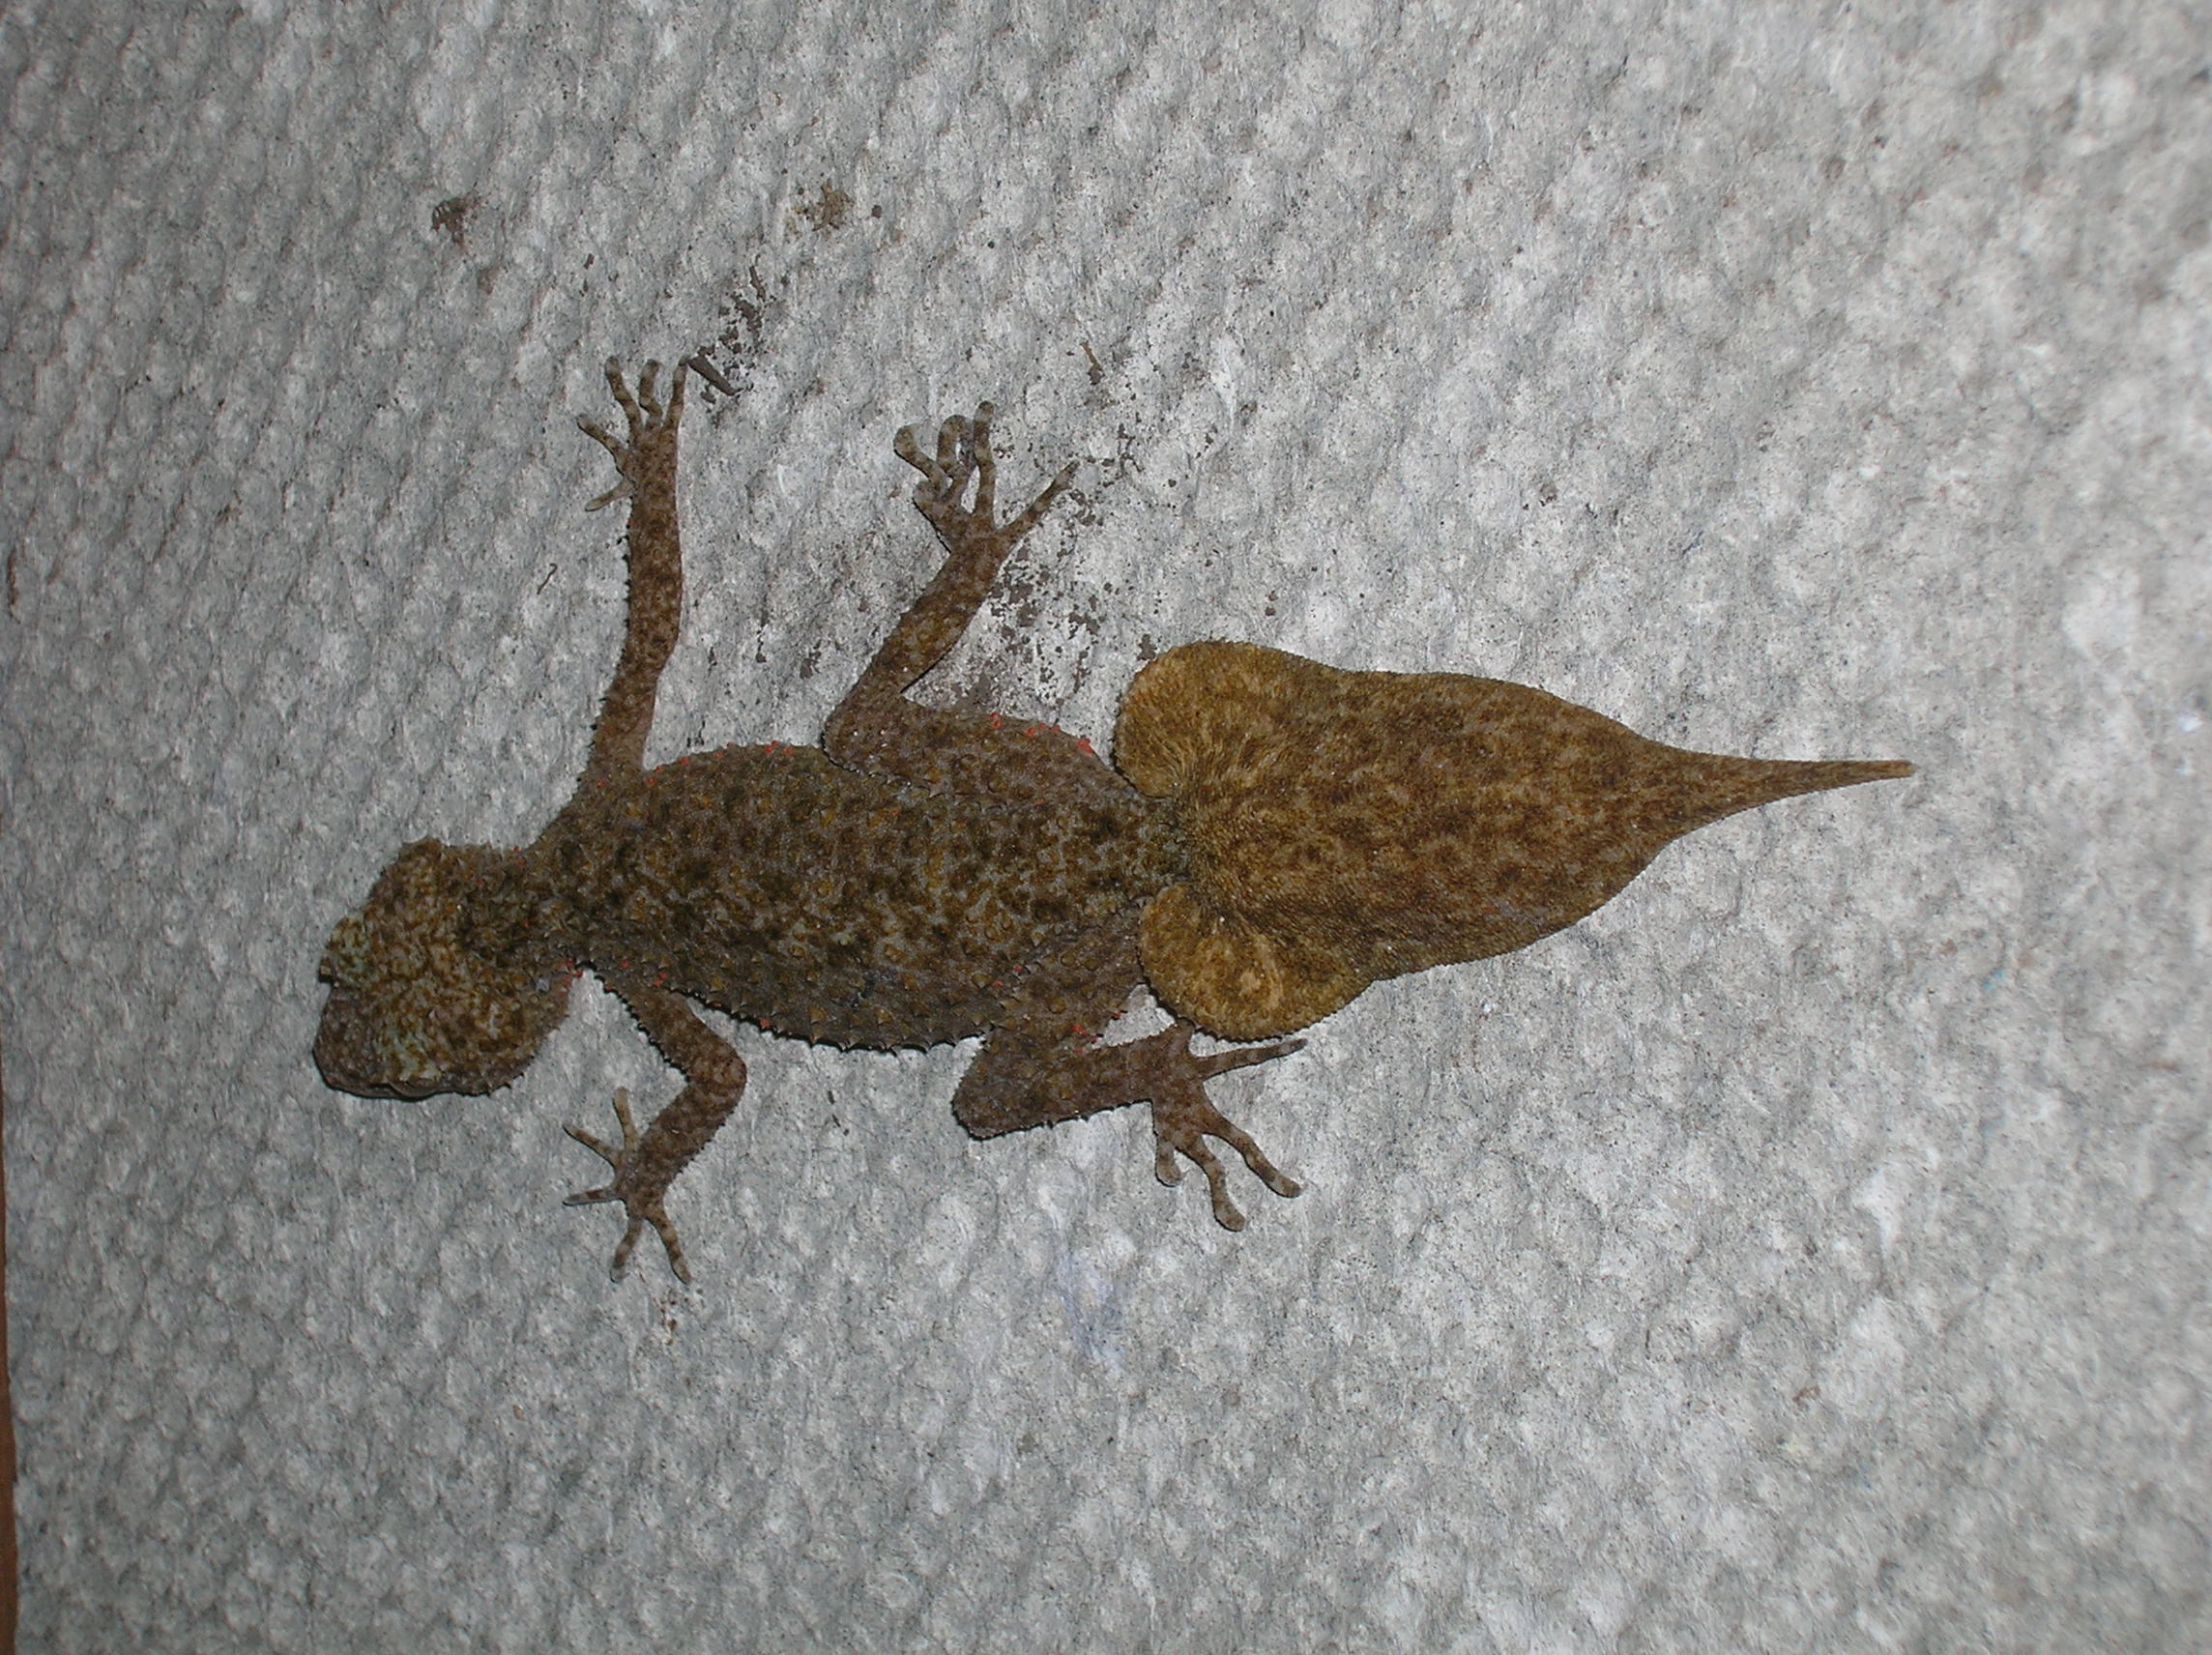 Leaf Tail Gecko - Springwood